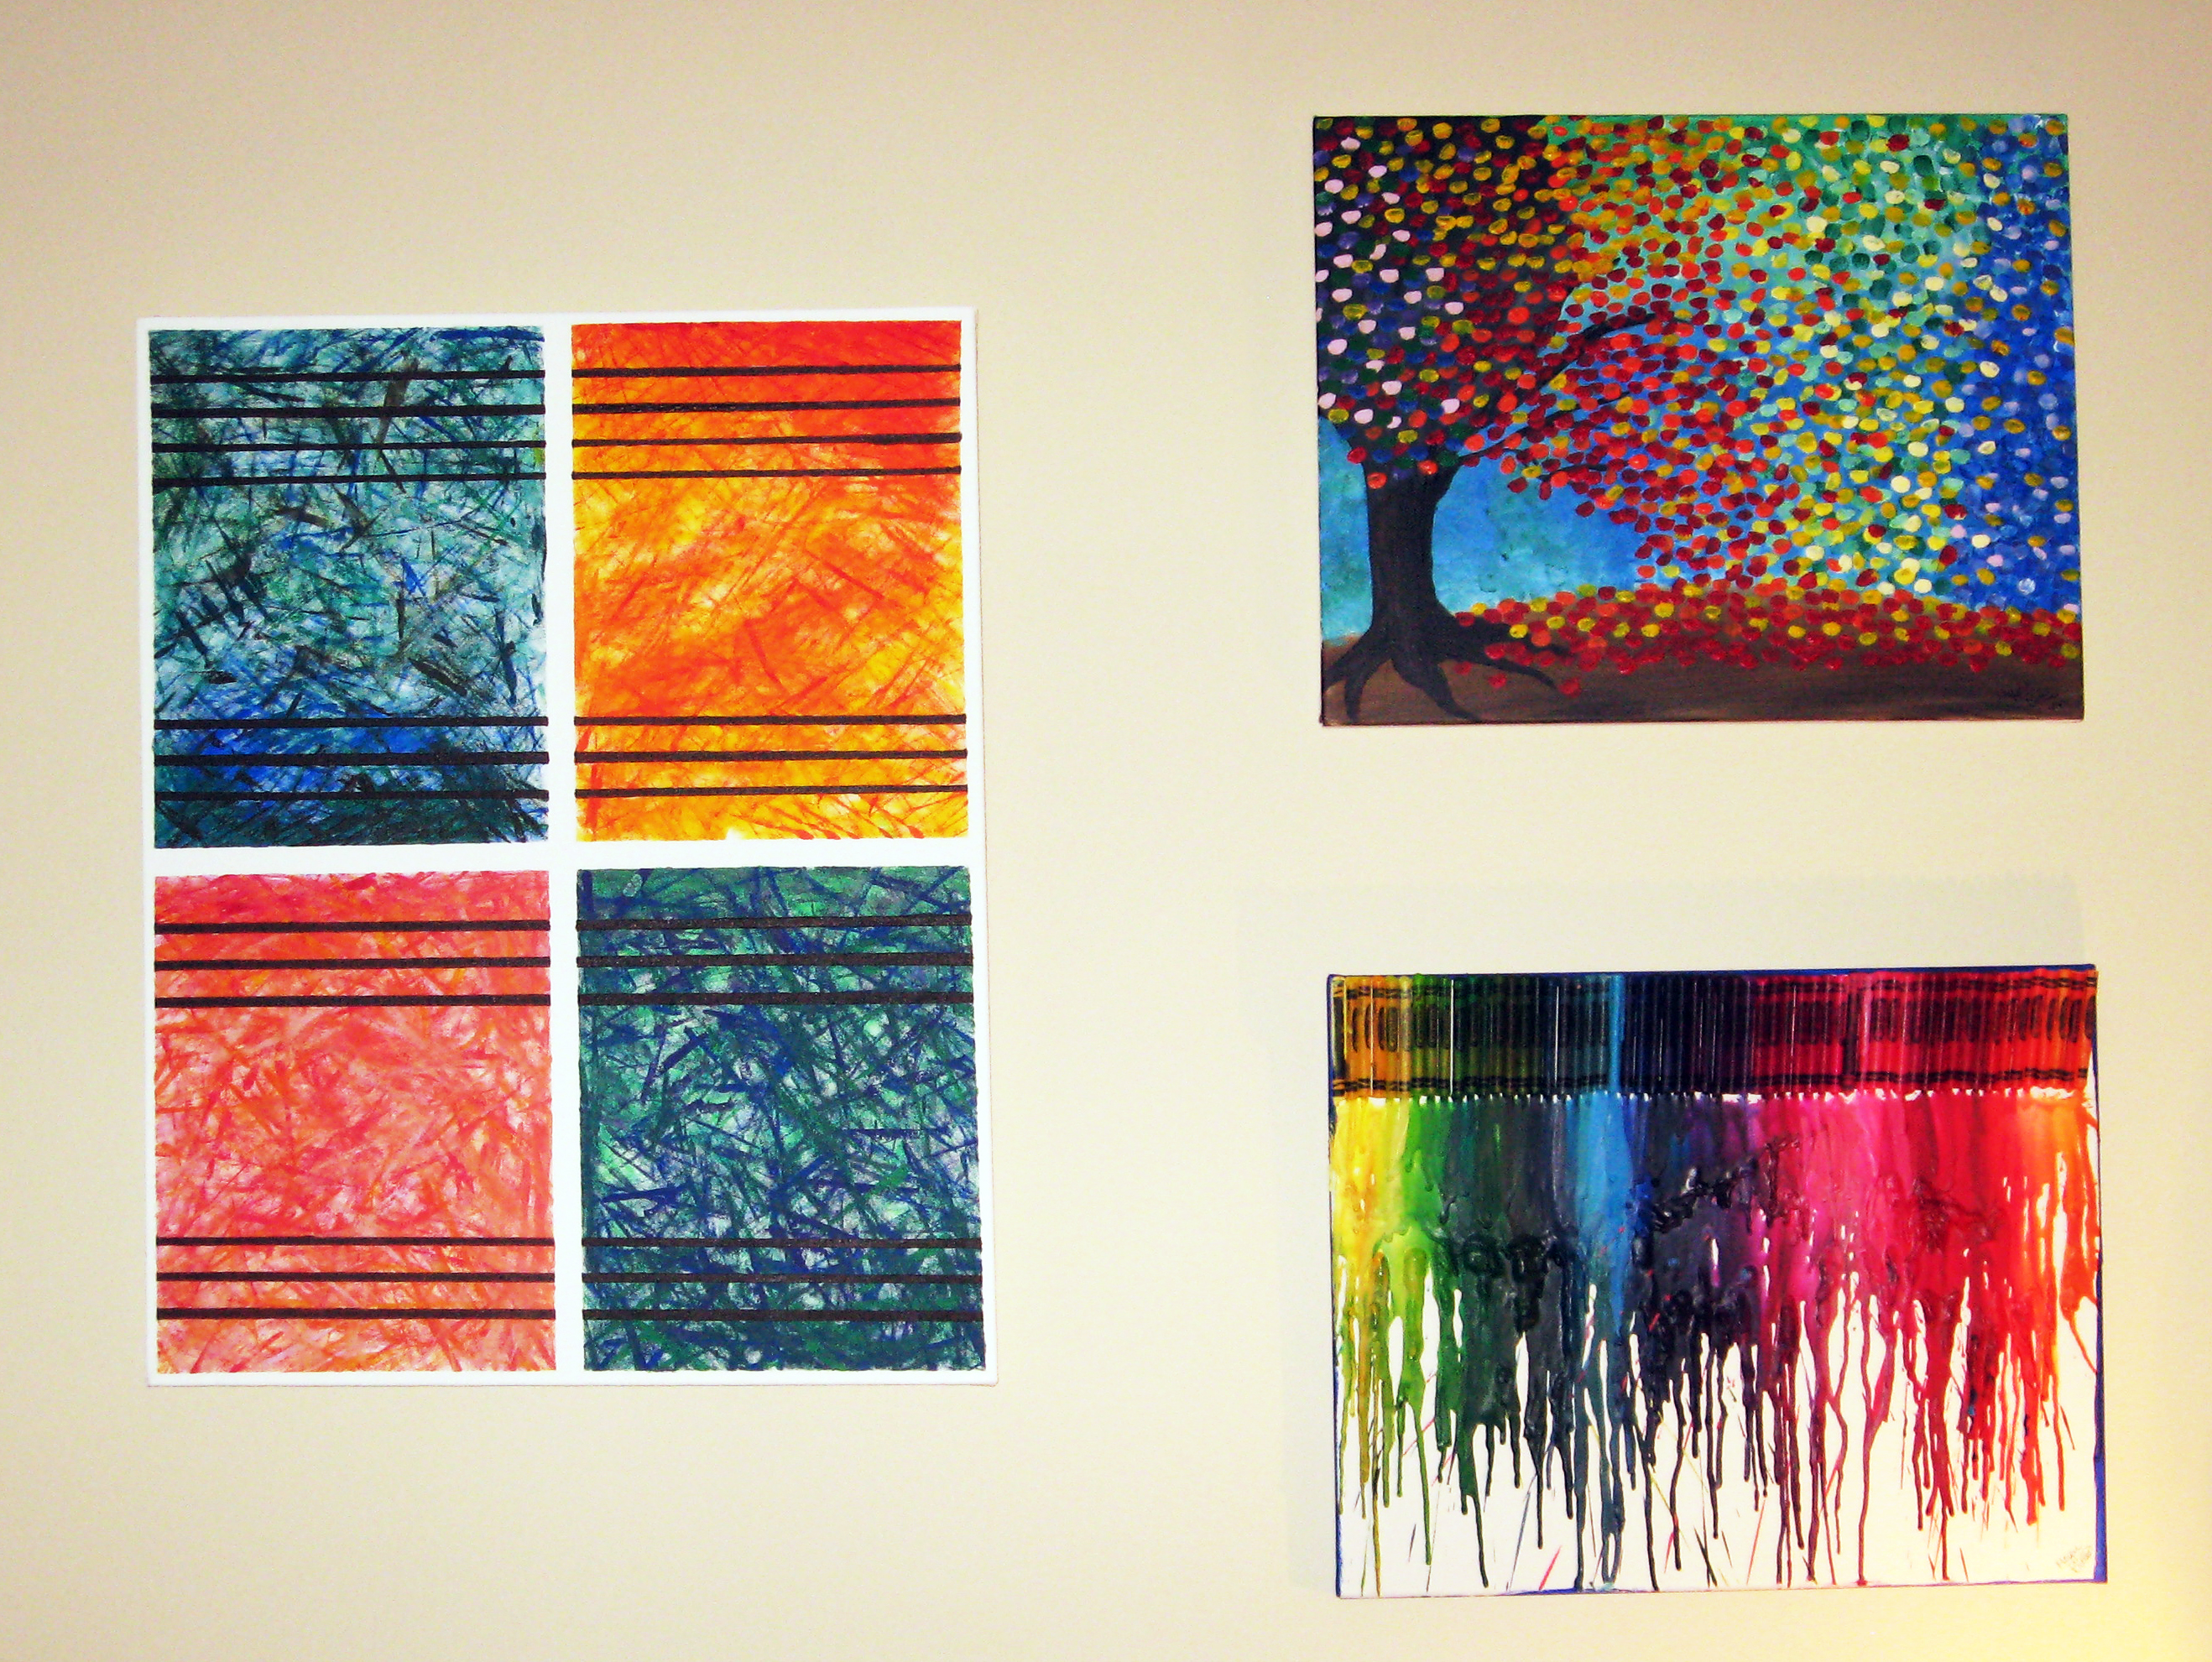 Diy abstract wall art make something mondays for Diy abstract acrylic painting